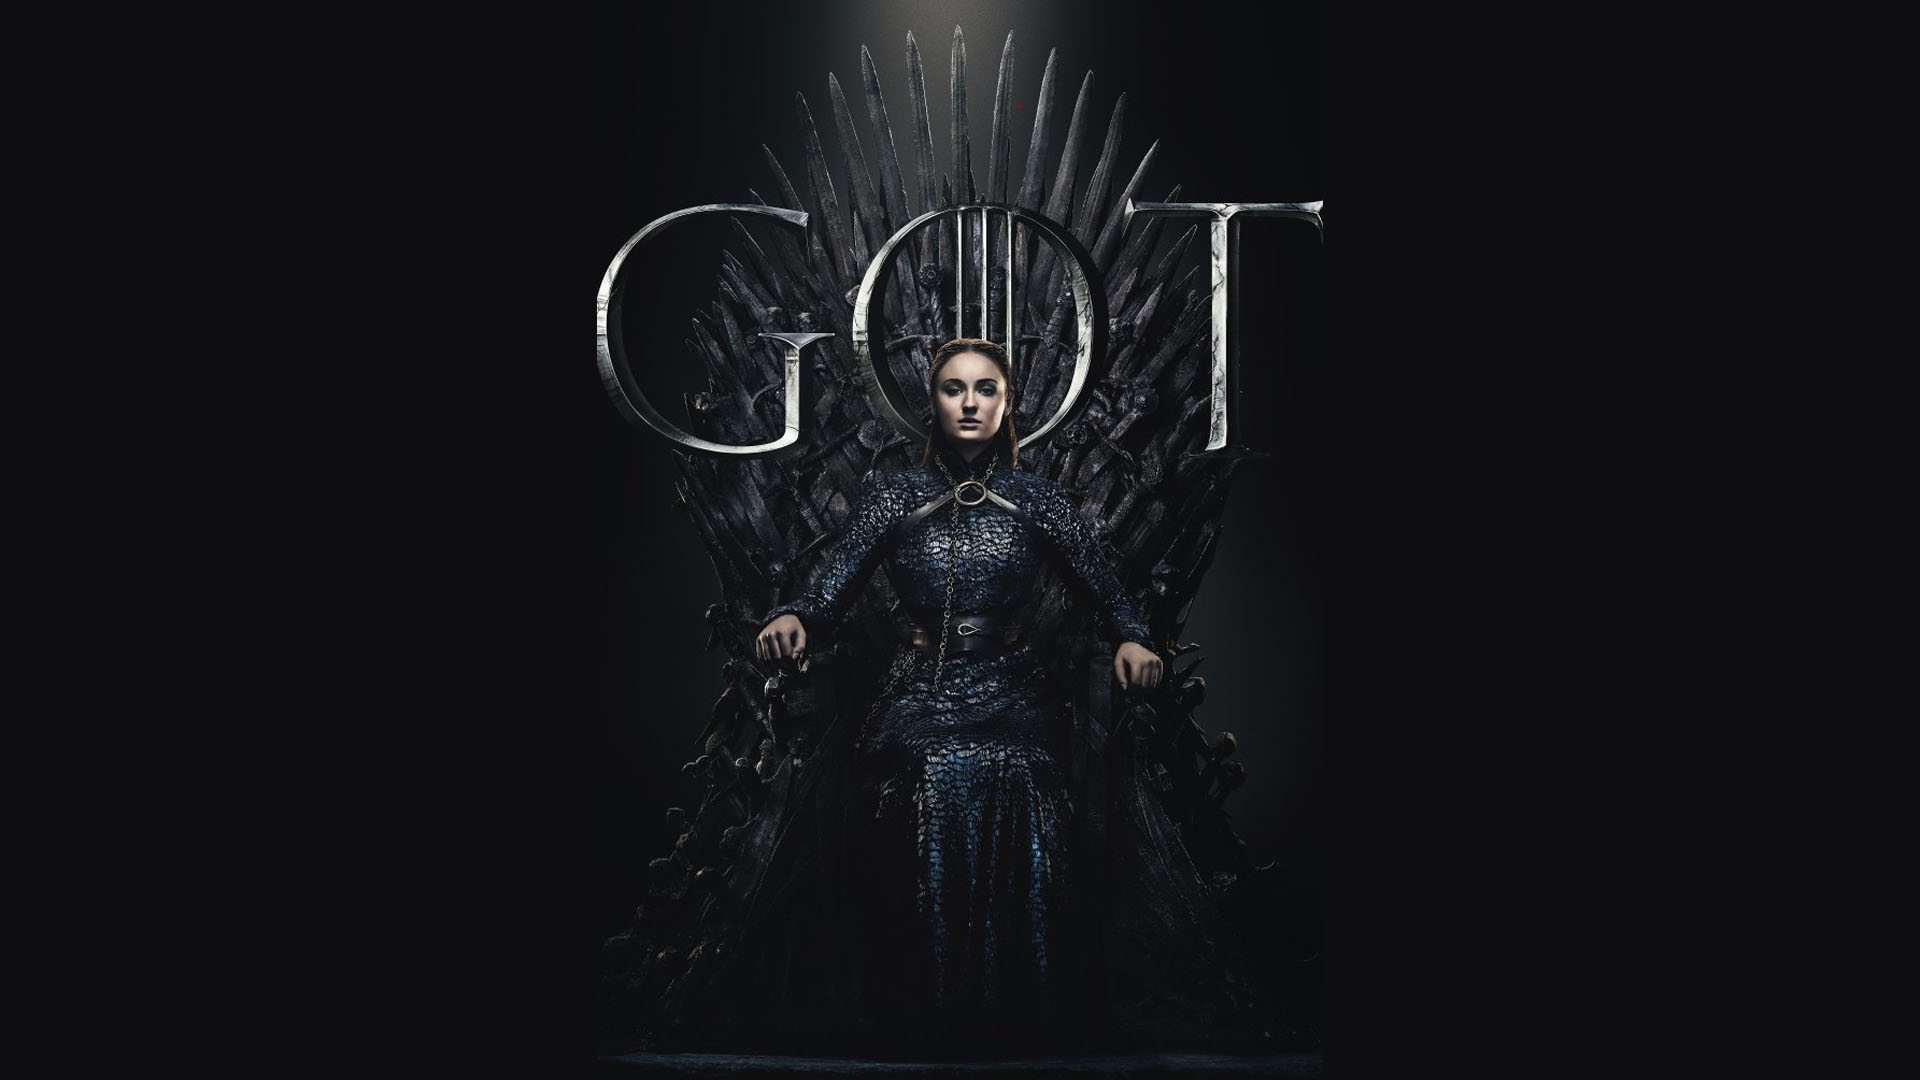 Game of Thrones   Season 8   1080p Wallpapers   Album on Imgur 1920x1080